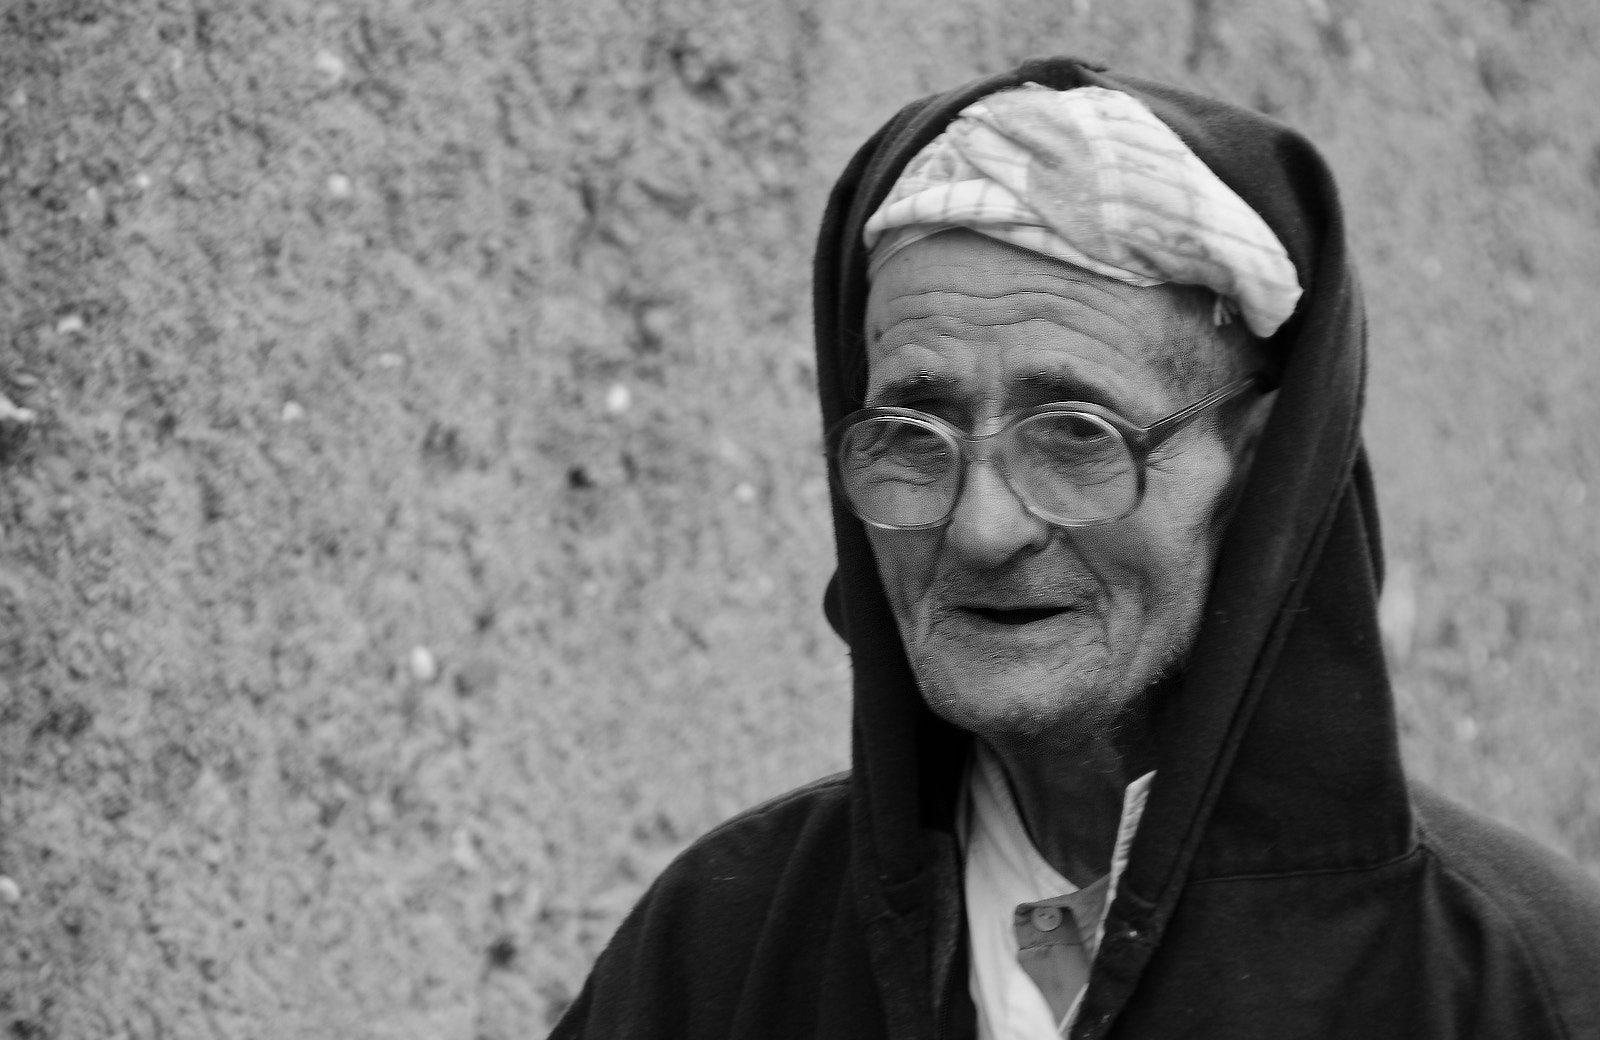 Photograph Visages et regards by Imad Ammor on 500px